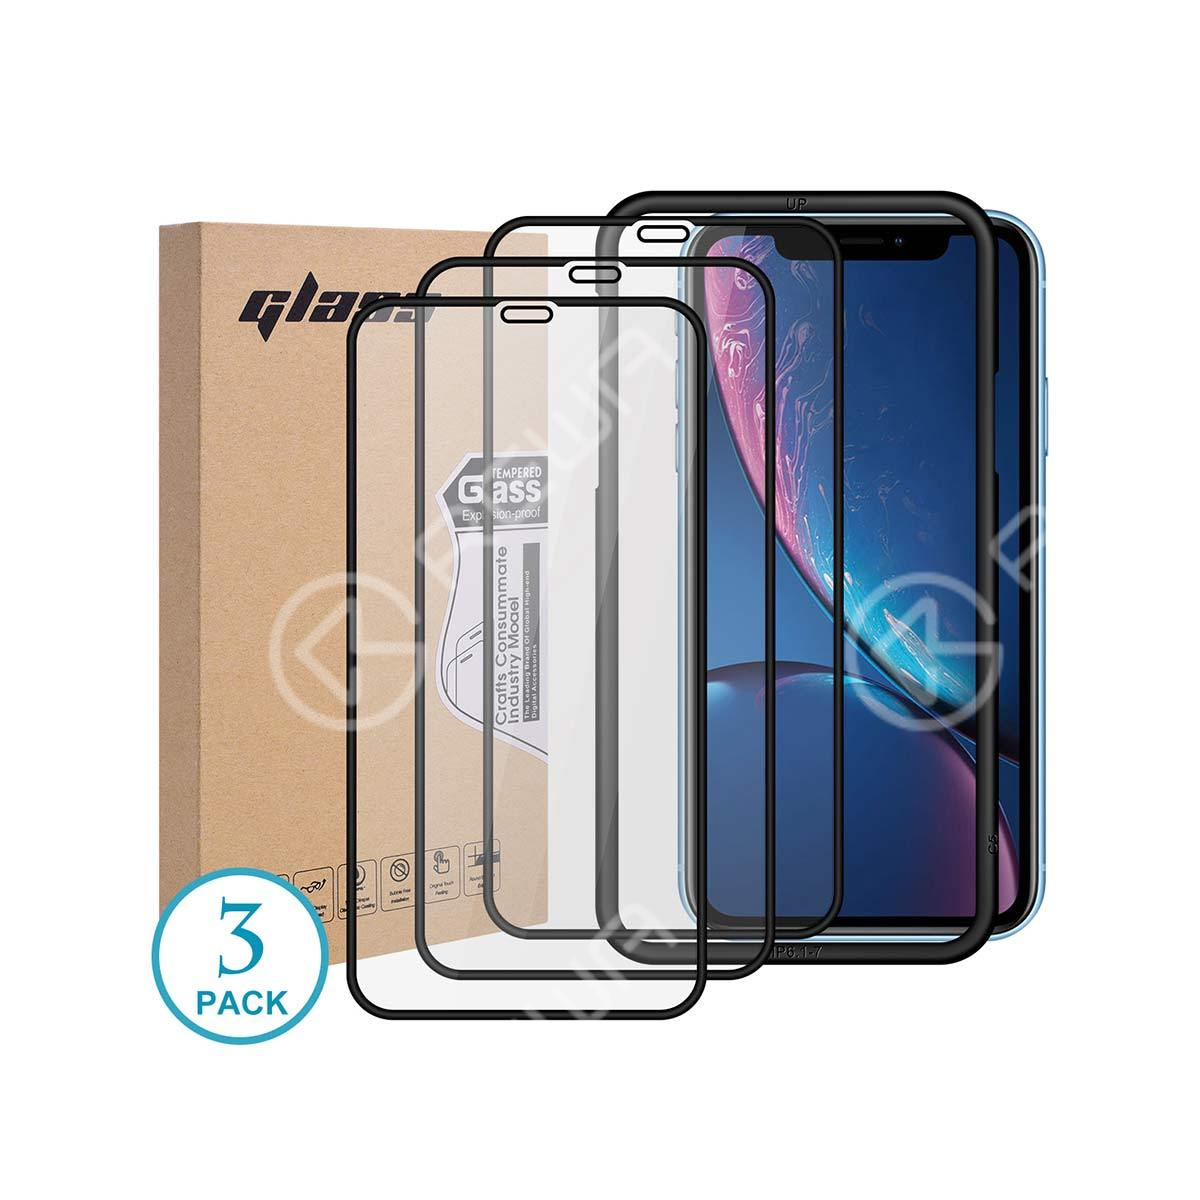 3 Pack Screen Protector Tempered Glass With Install Gudiance Frame For iPhone